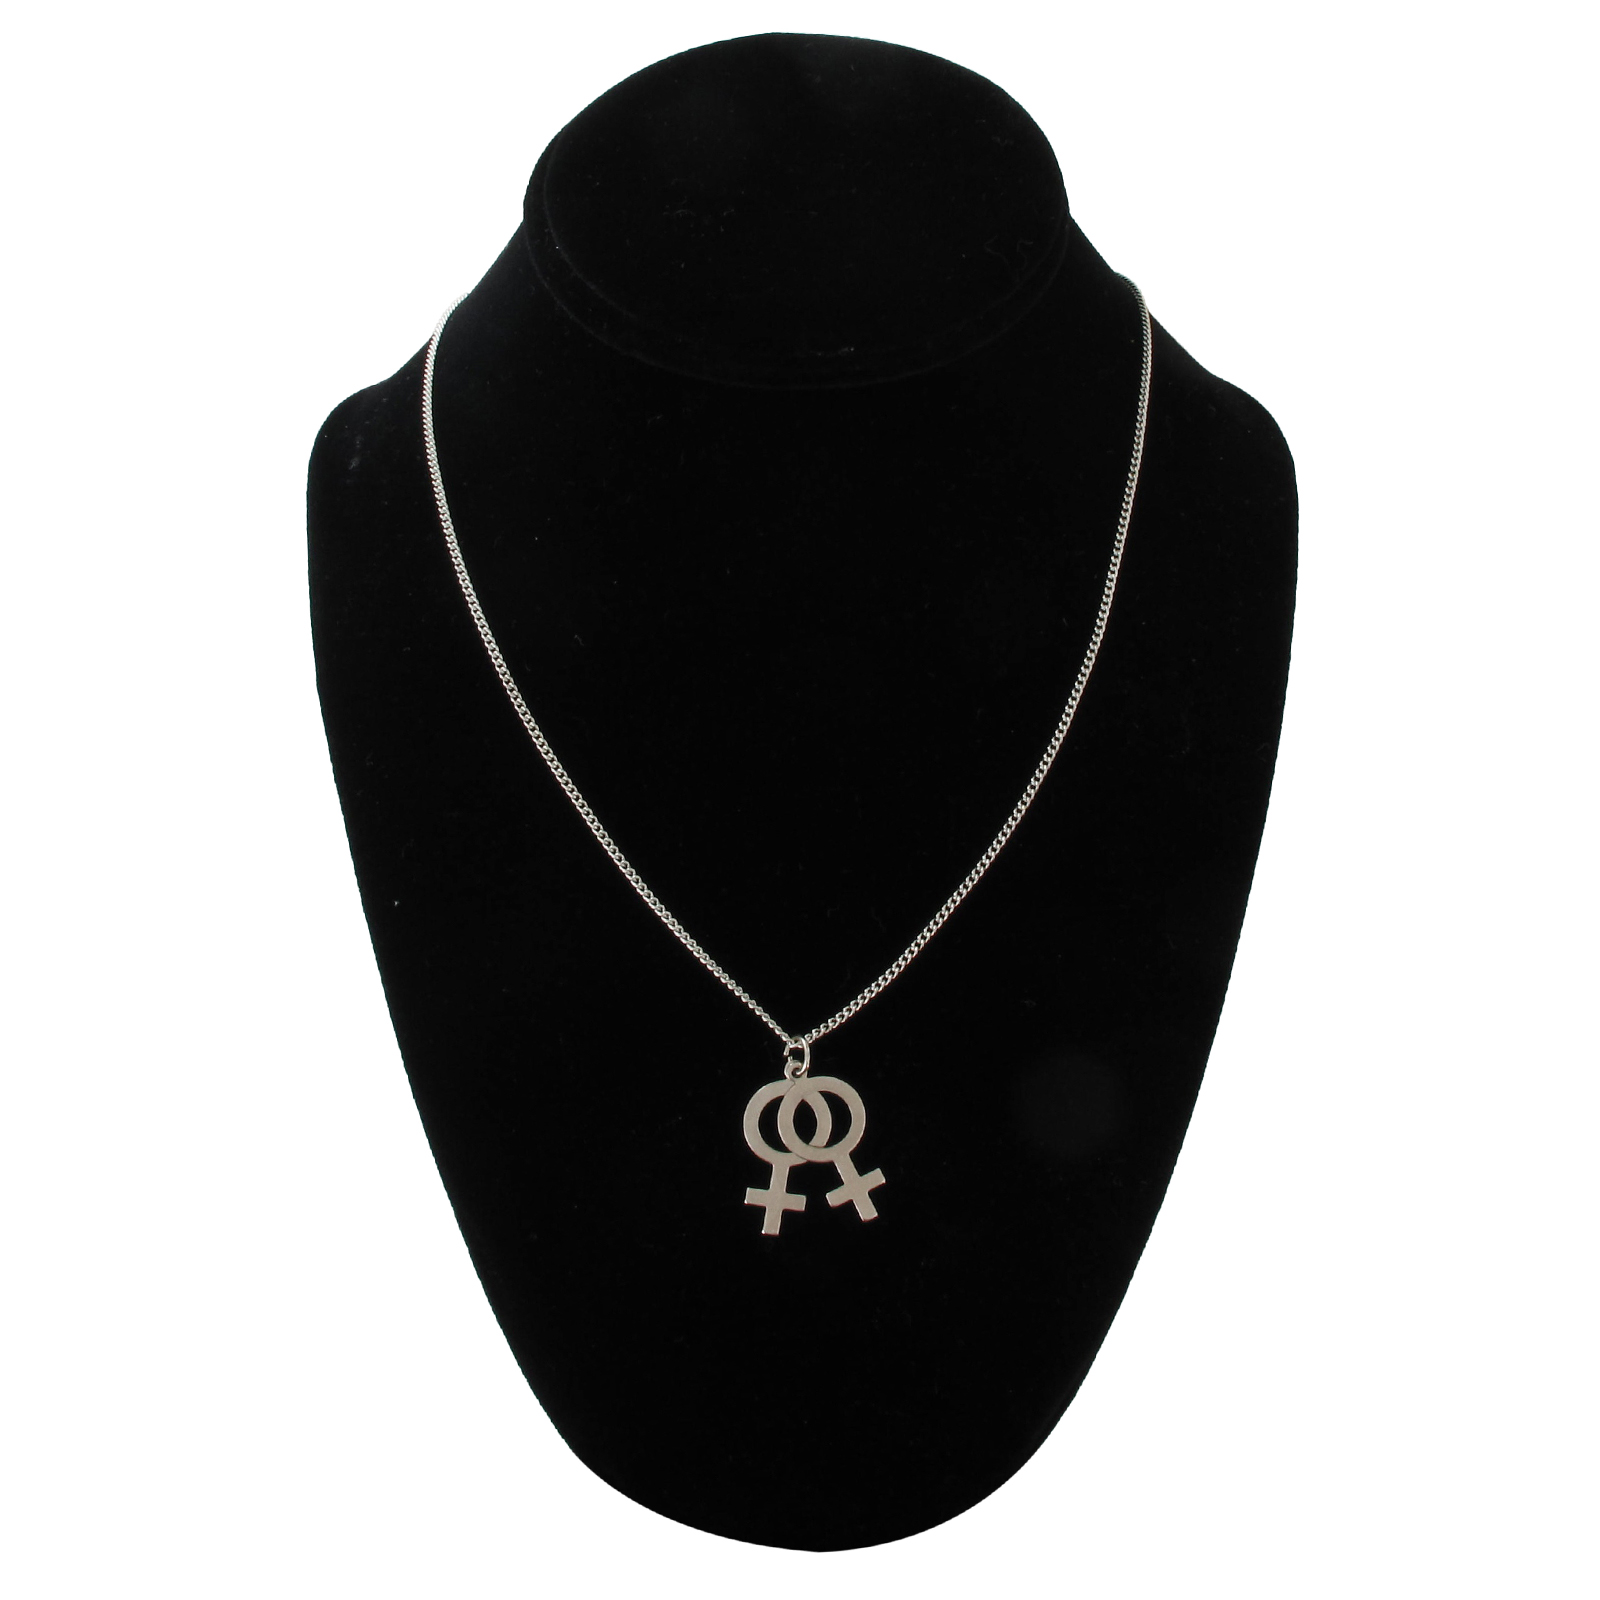 Ky & Co Silver Tone Lesbian Couple Female Gender Symbol Pendant Necklace USA Made